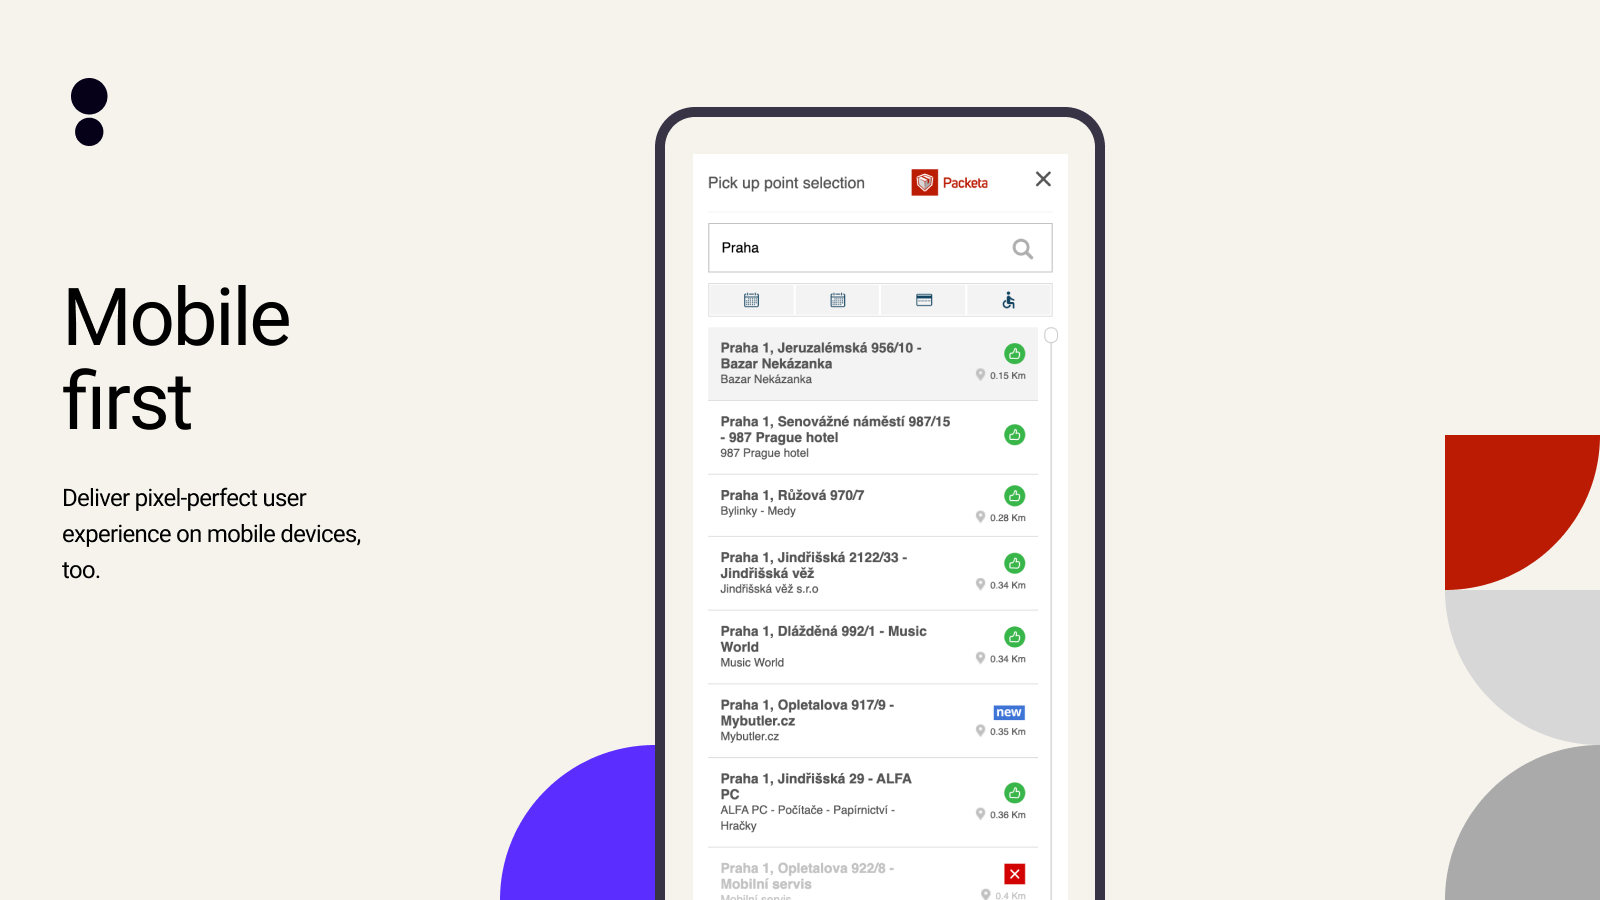 Deliver pixel-perfect user experience on mobile devices, too.